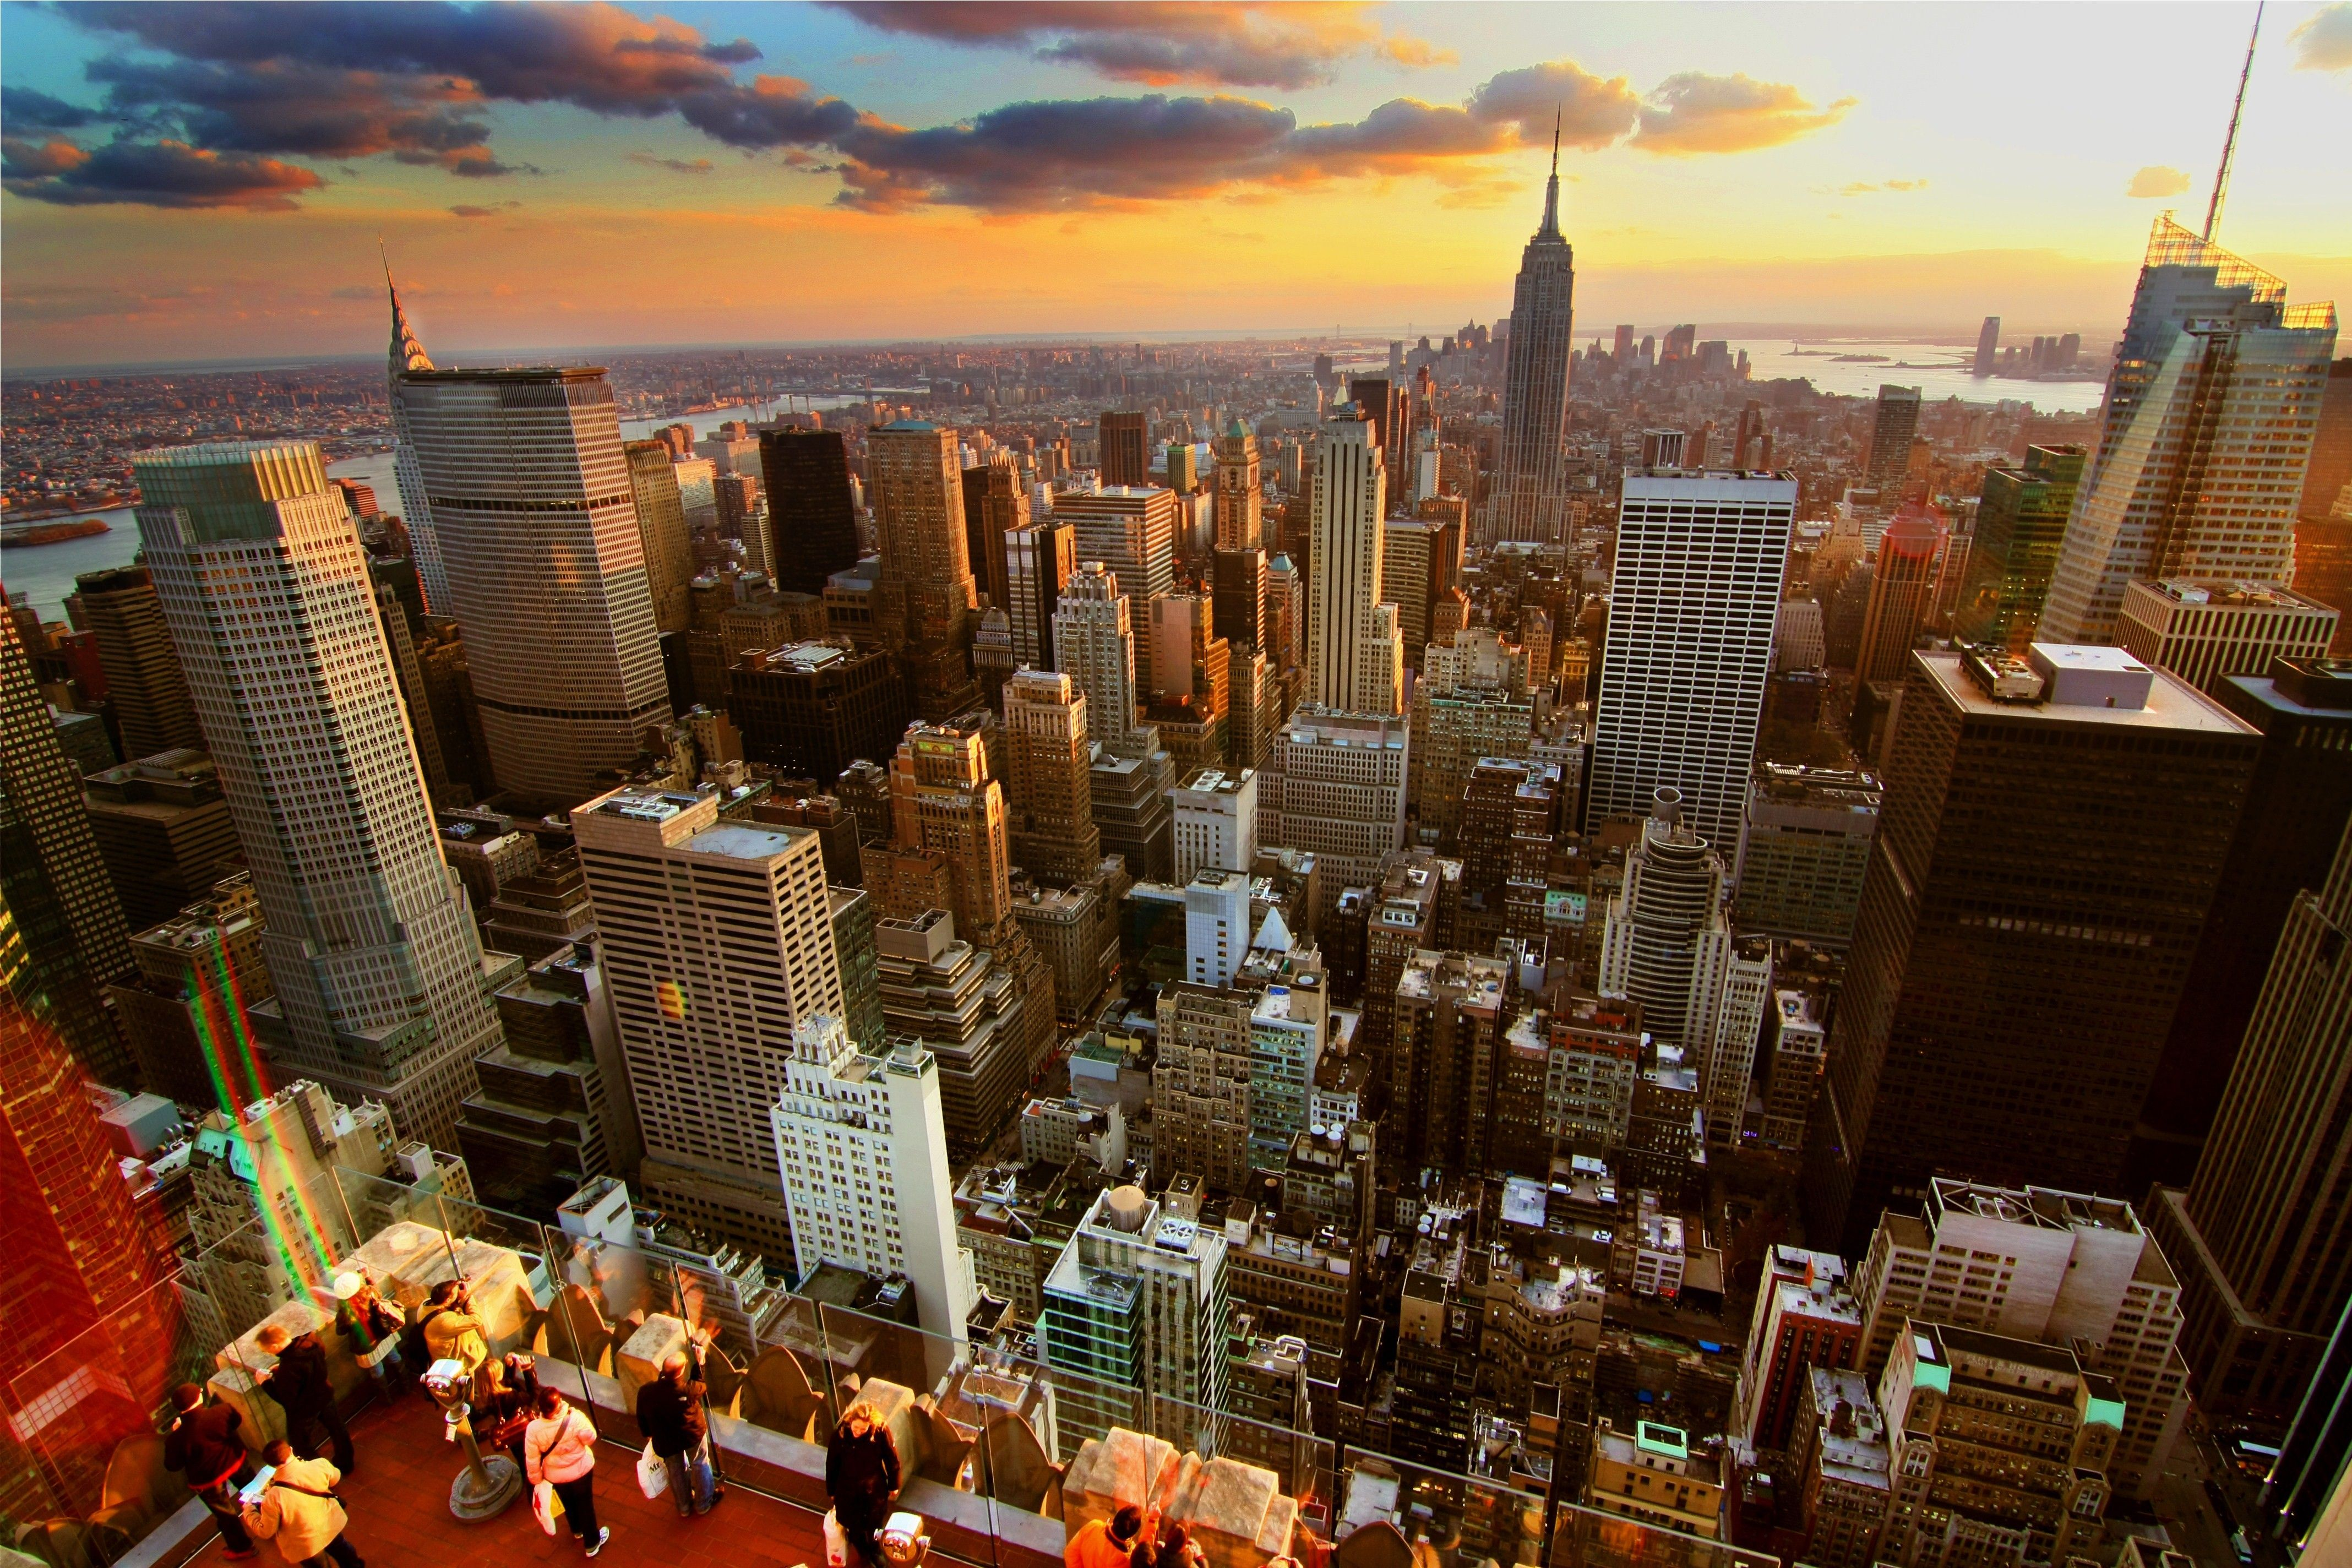 An aerial view of New York City at sunset.